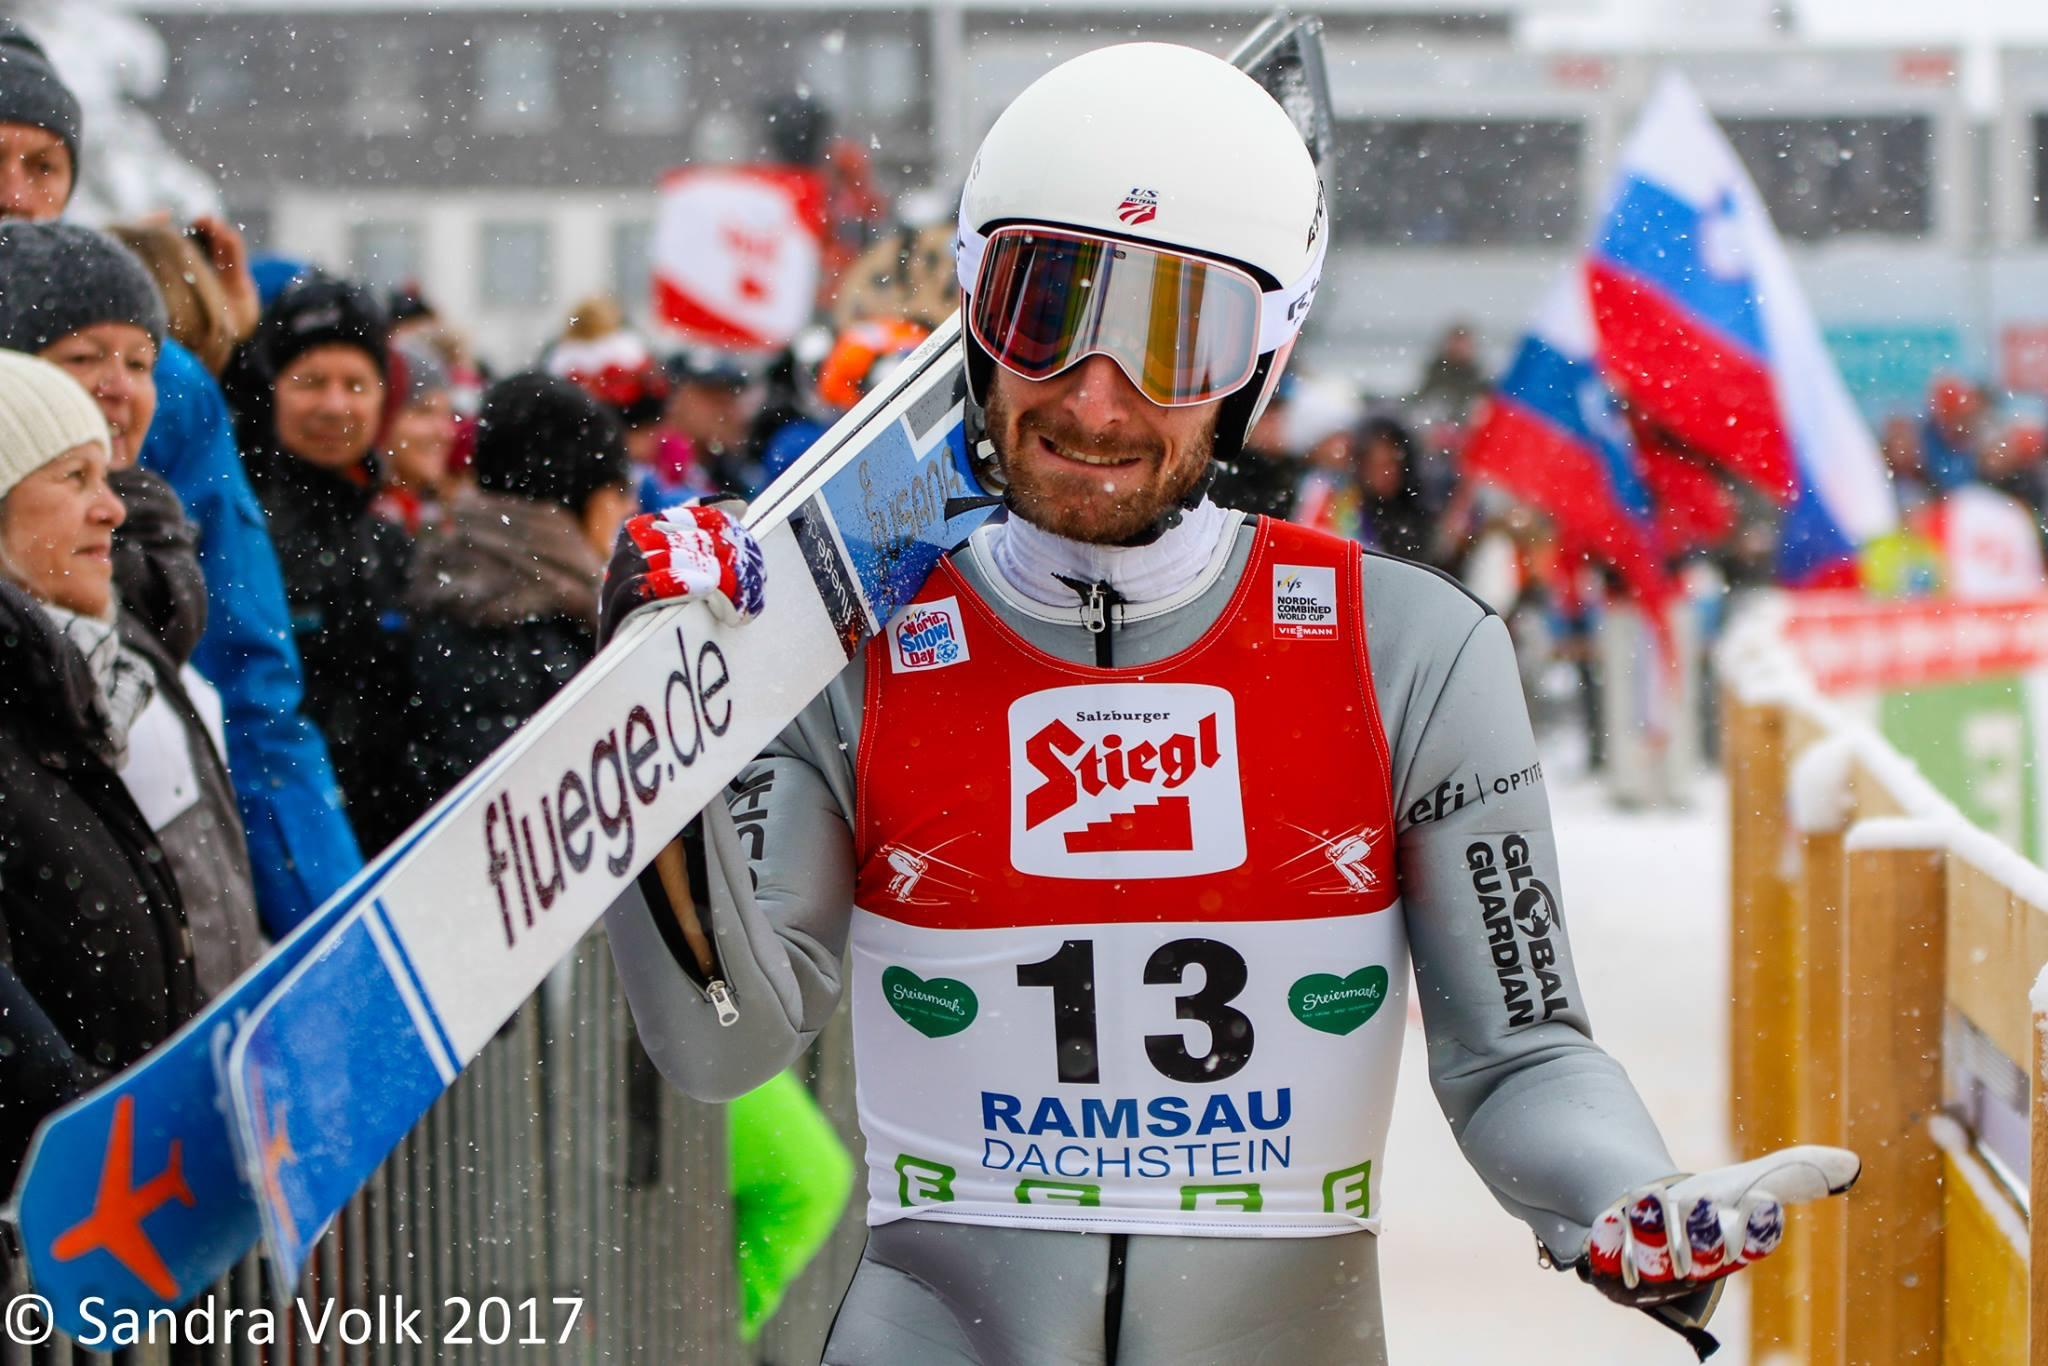 US NORDIC TEAM EXCELS AT THE WORLD CUP